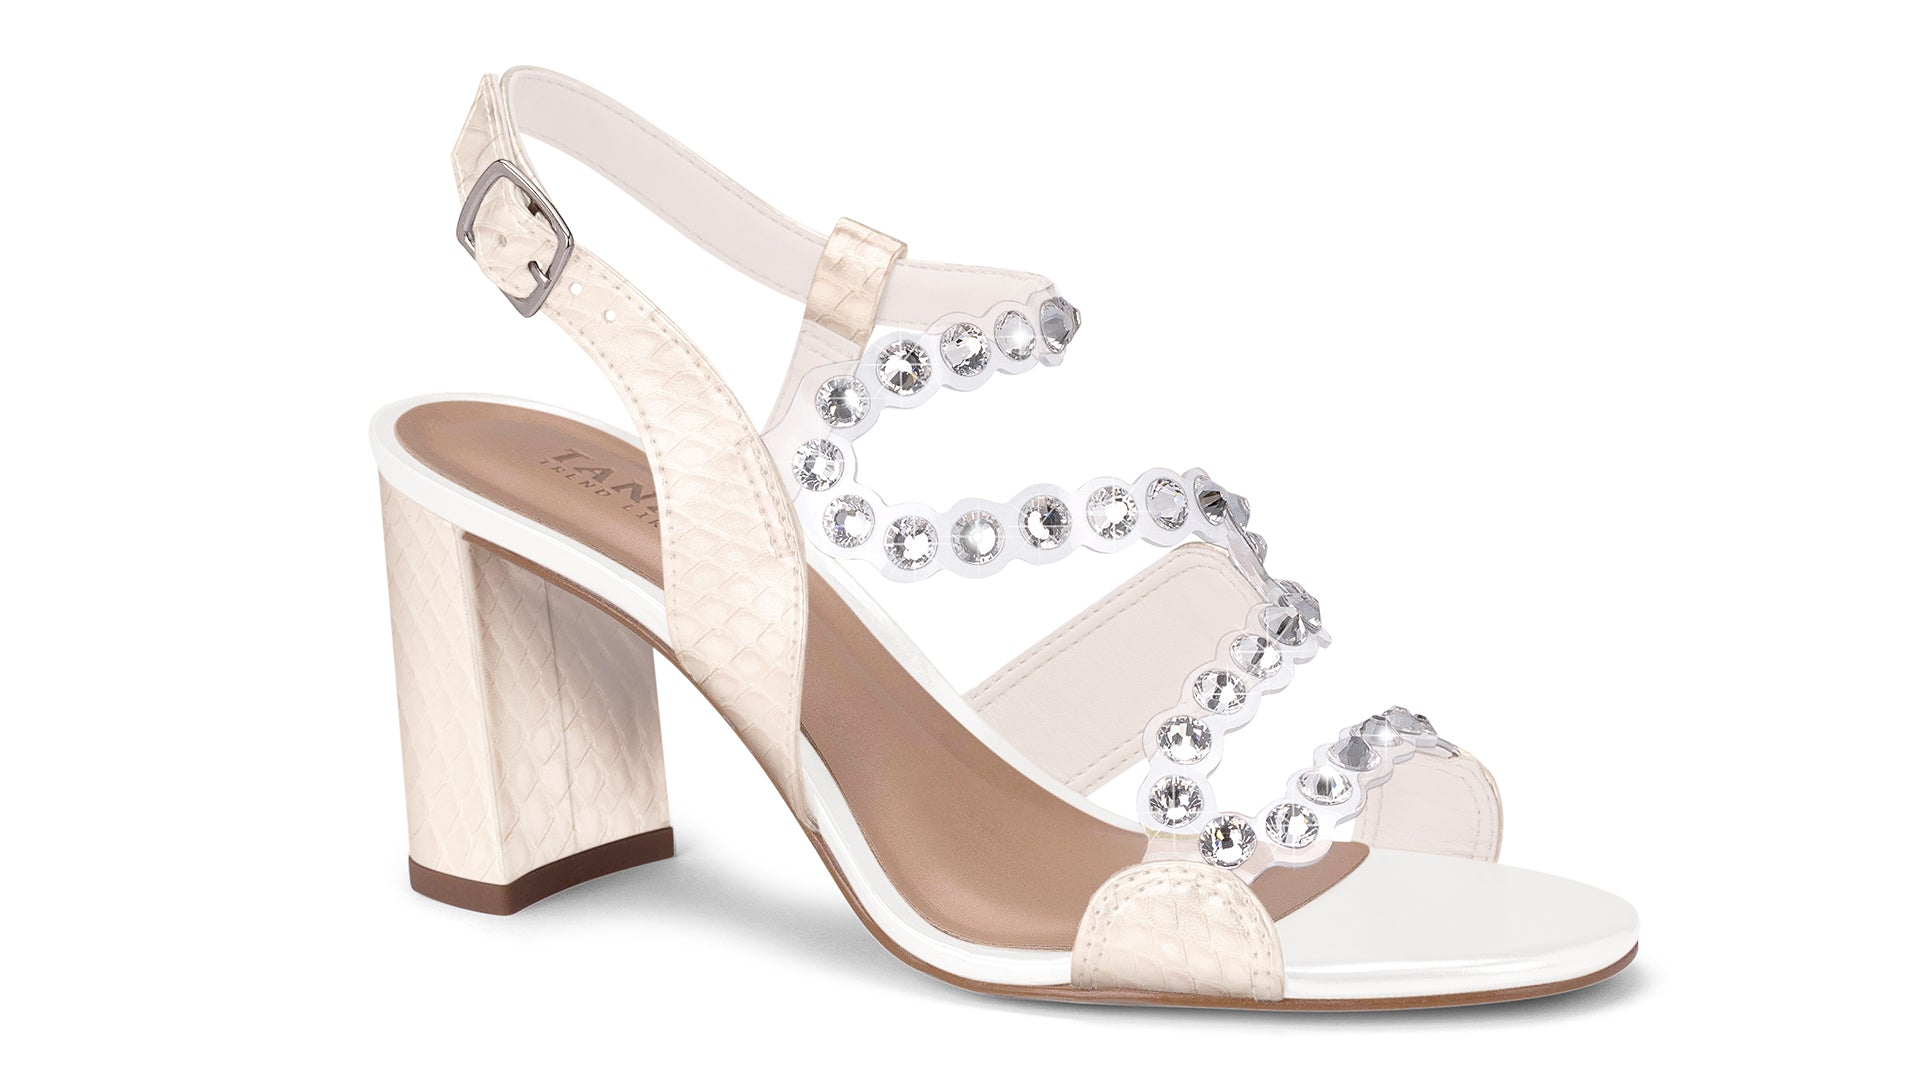 Gloriana White Sandal